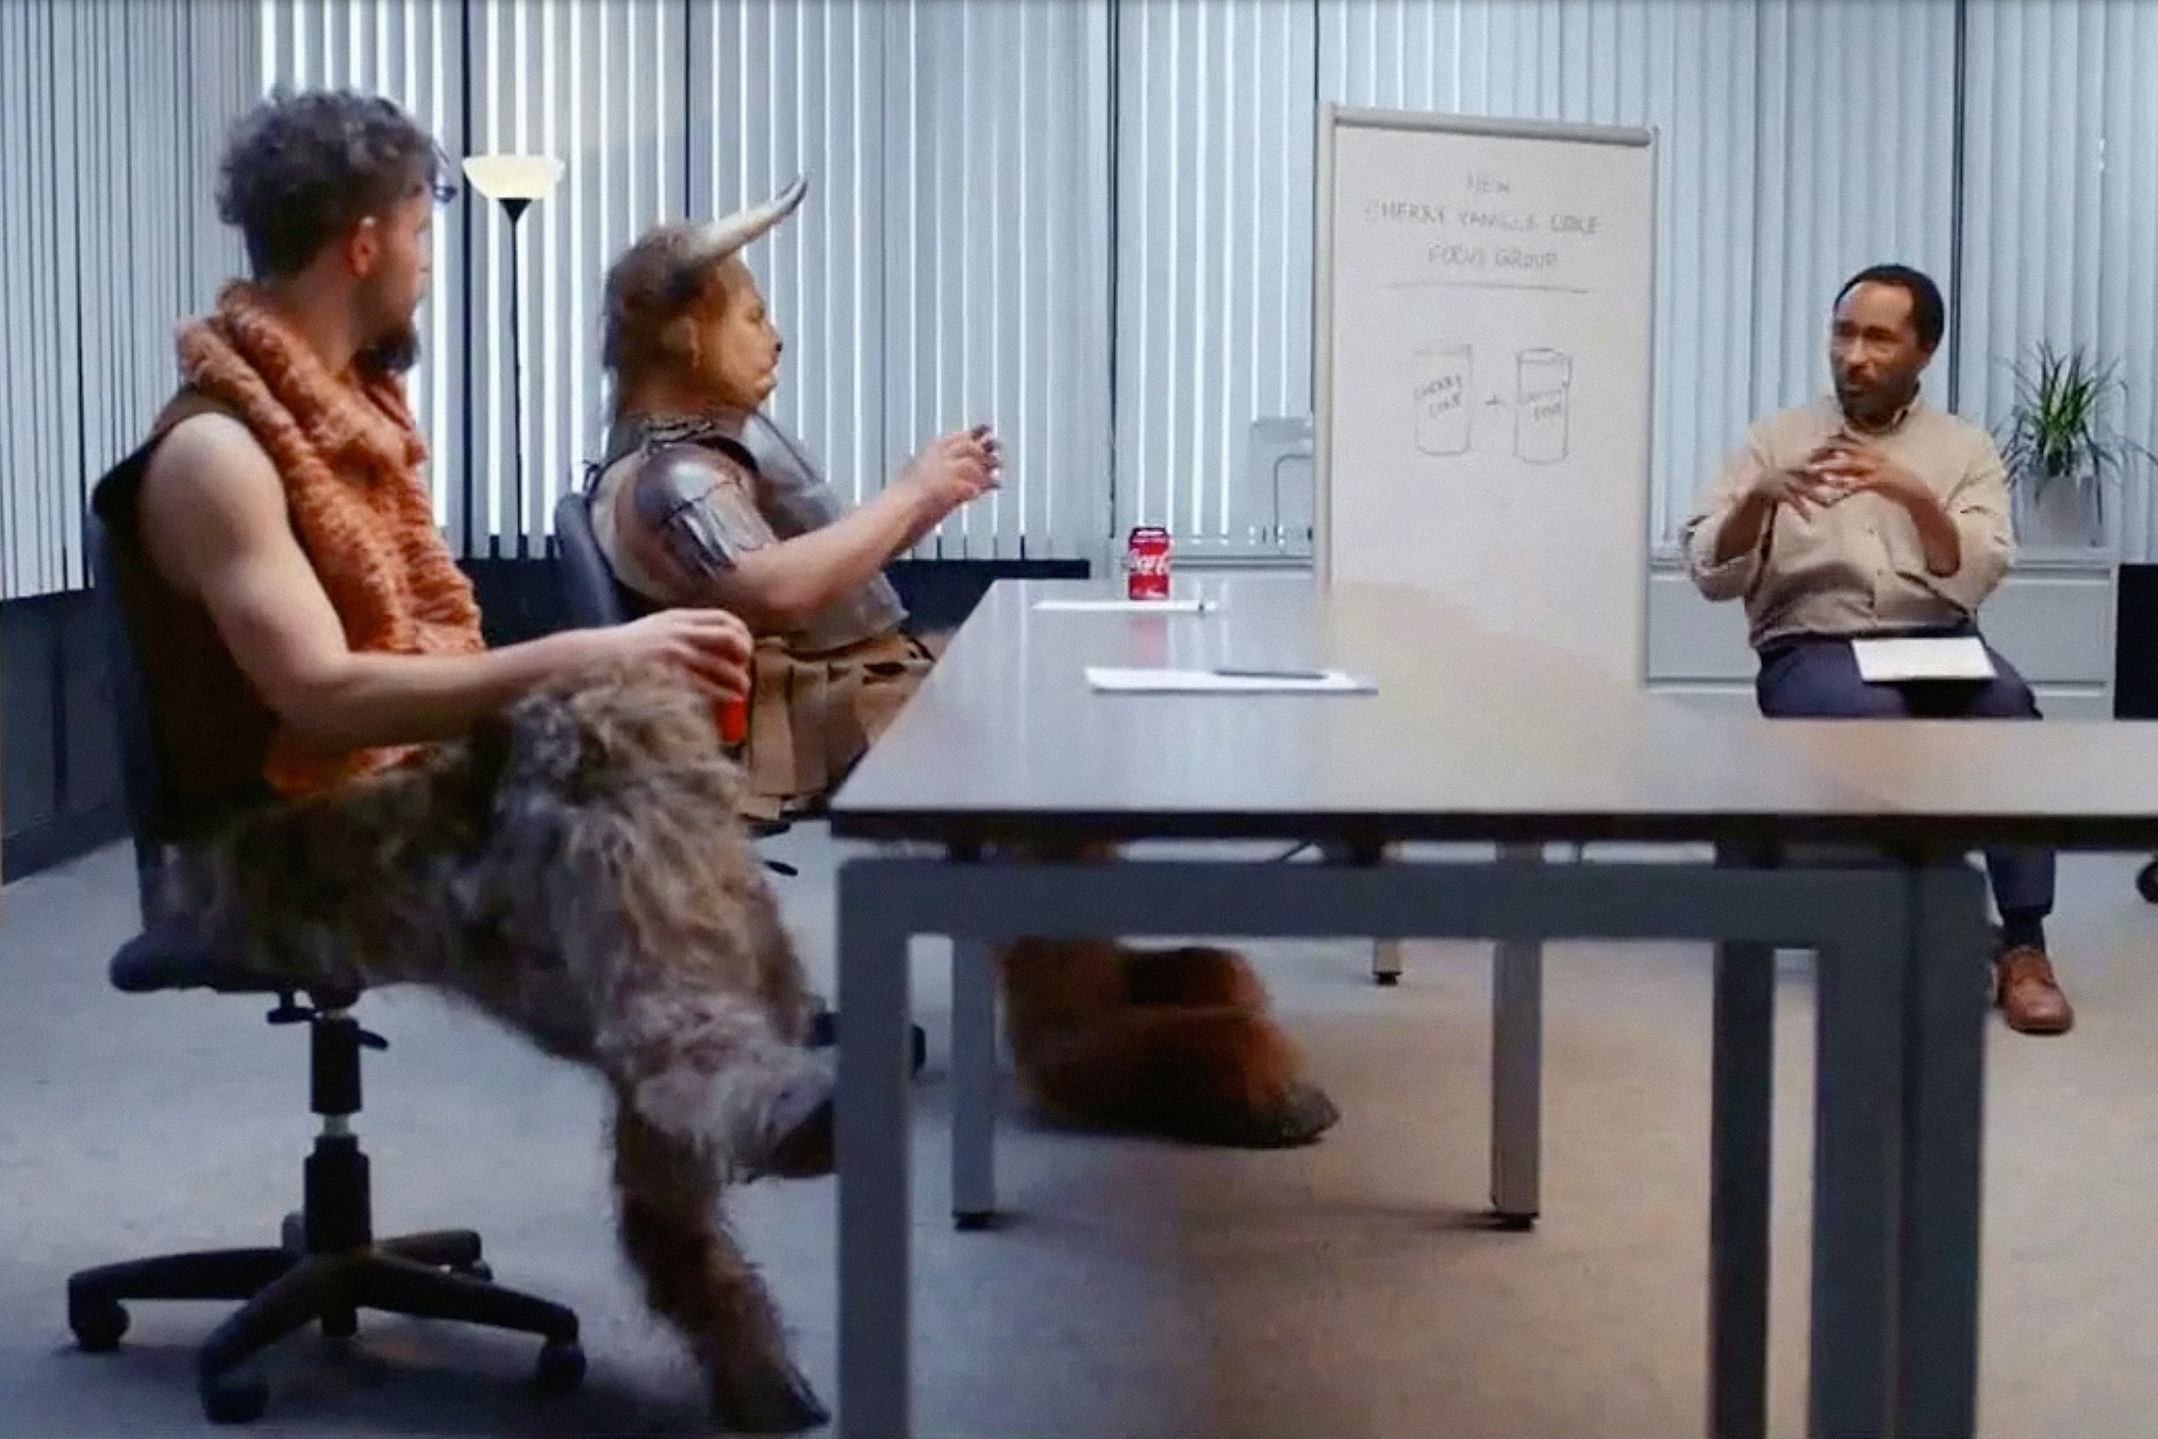 Watch the newest commercials on TV from Coke, AT&T TV, Allstate and more